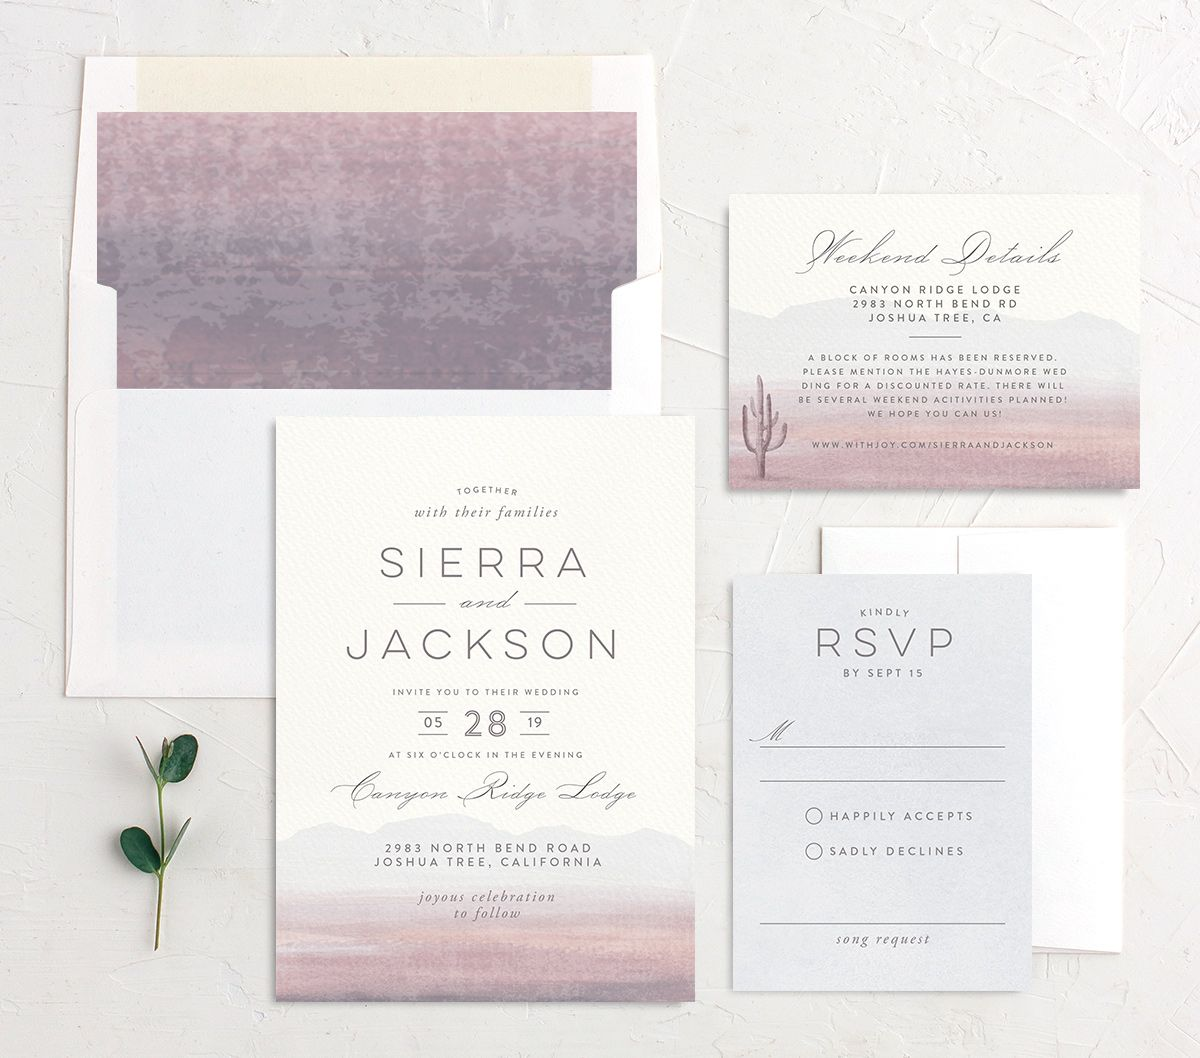 painted desert wedding invitation stationery suite in purple